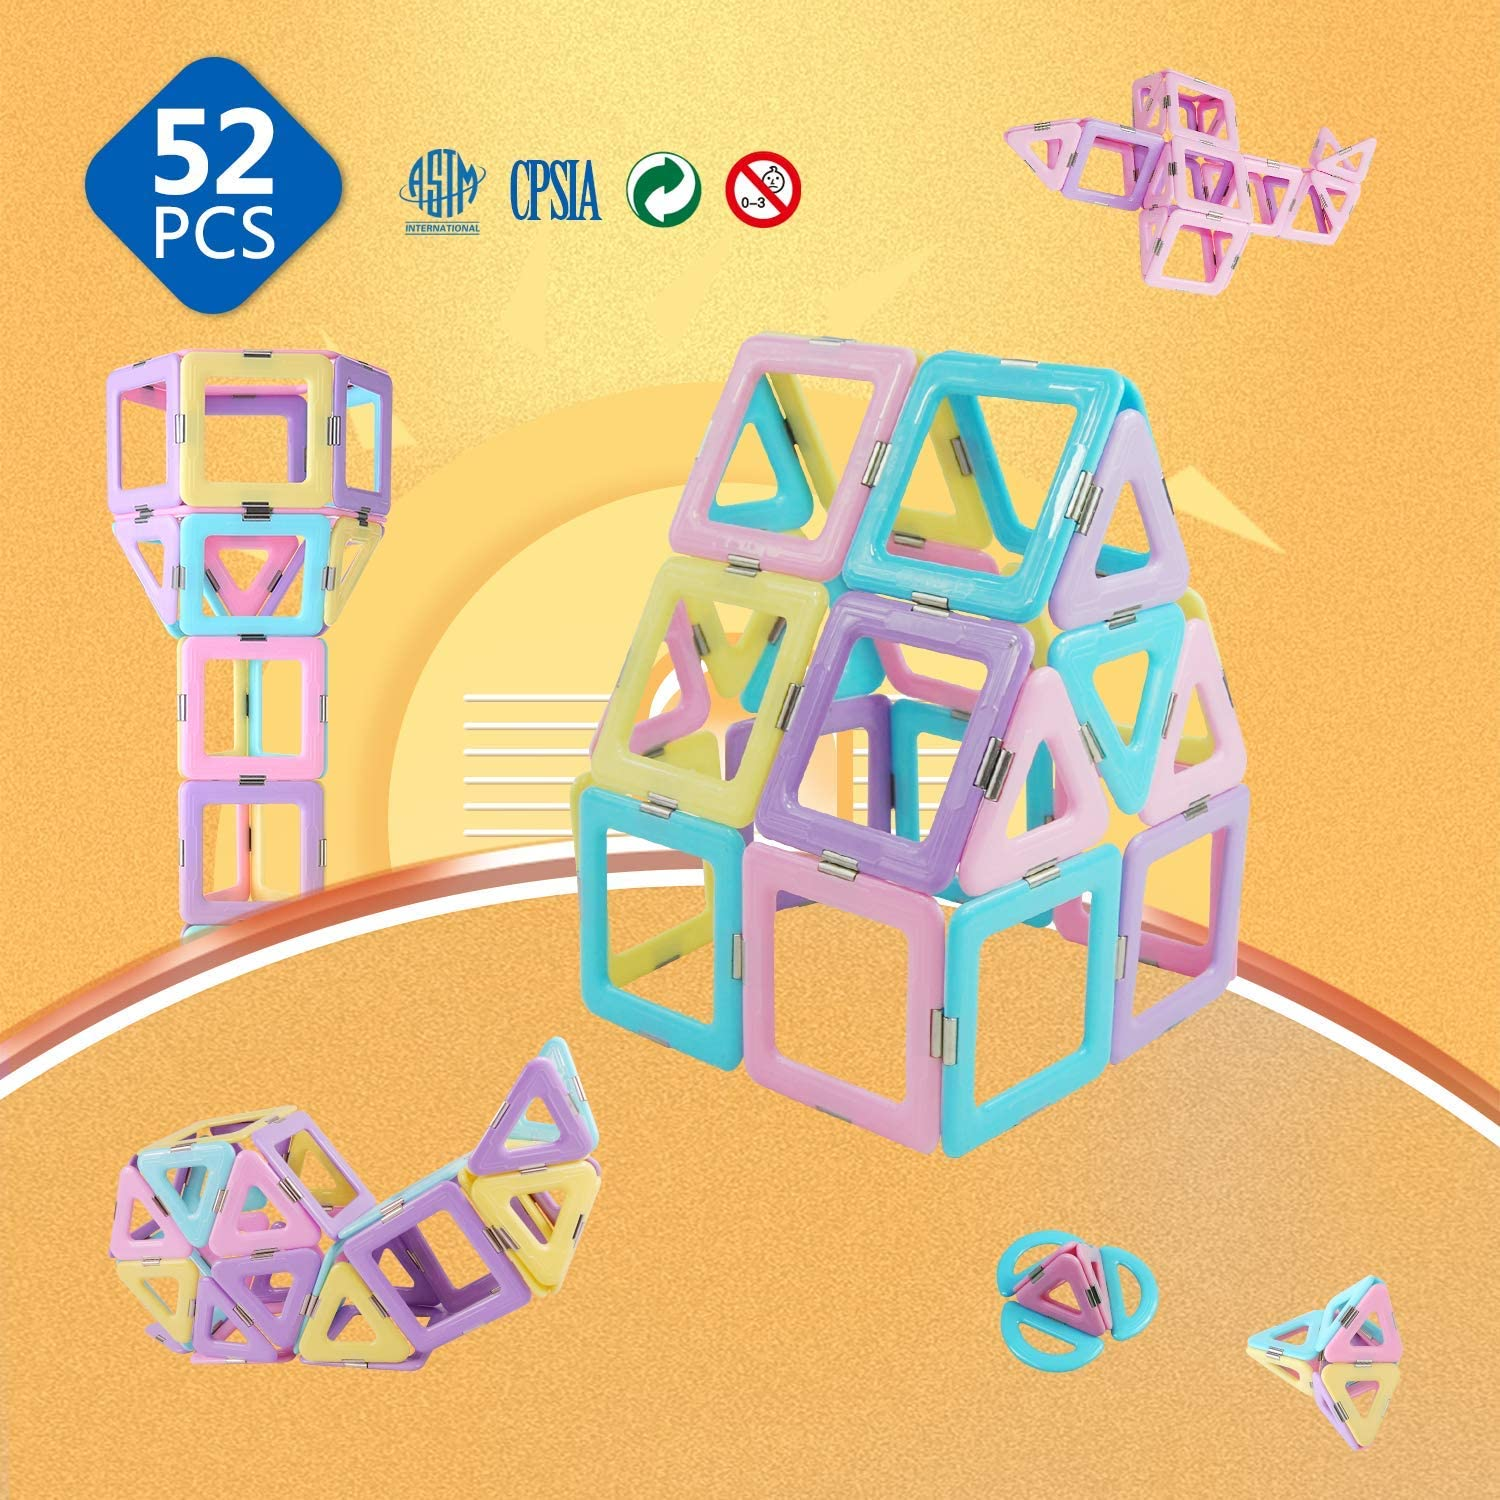 Magnetic 3D Magnet Toys 52 Pieces Set for Toddlers Boys Girls Gift Magnetic Building Blocks with Candy Color Toys: Toys & Games